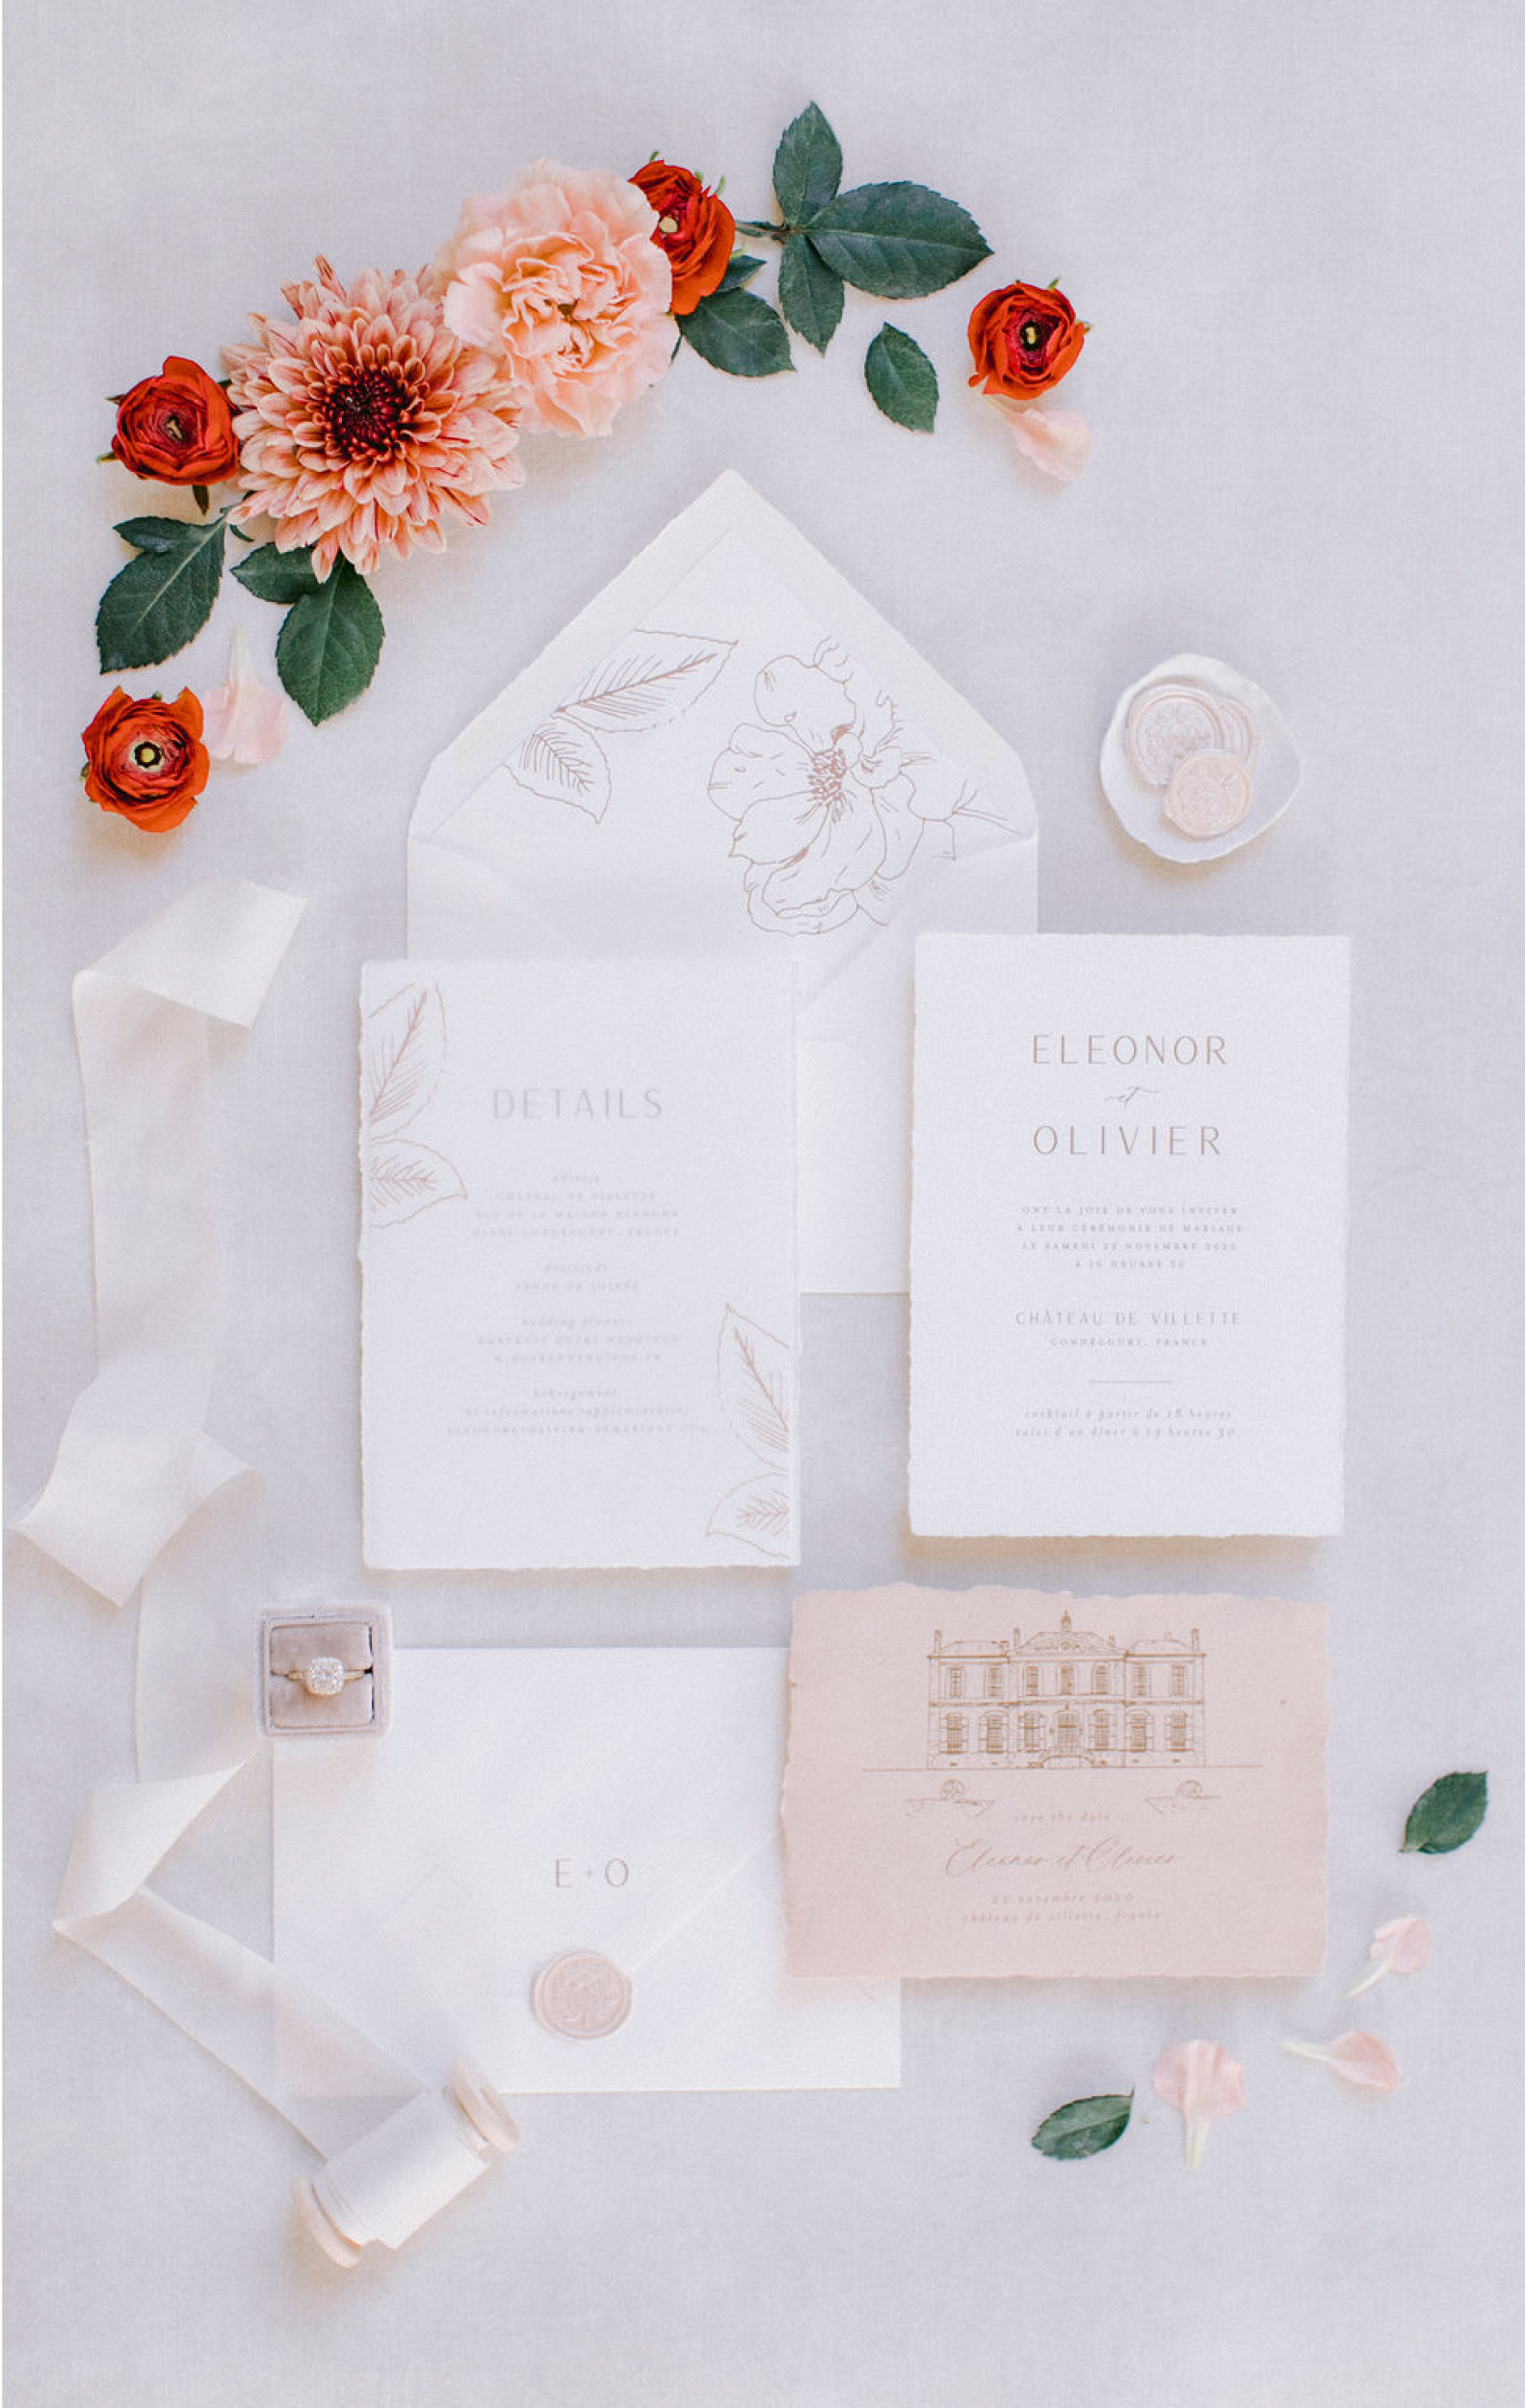 wedding stationery chateau de villette